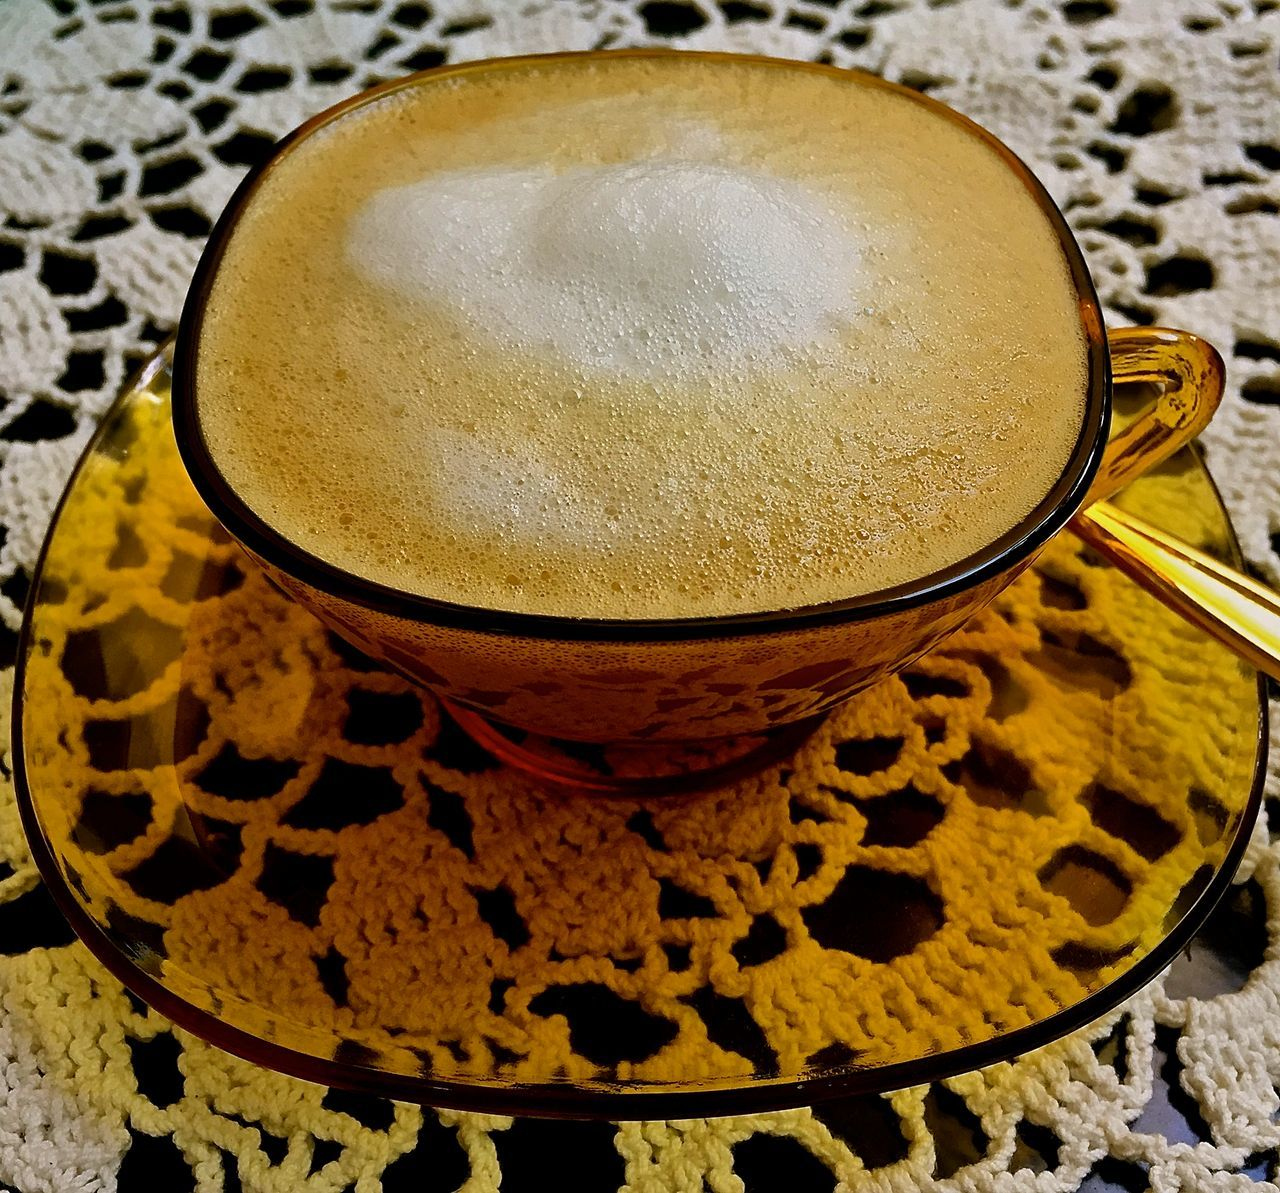 Afternoon Coffee Blissful Cafe Culture Cappuccino Close-up Coffee - Drink Coffee Culture Coffee Cup Drink Food And Drink Freshness Froth Froth Art Frothy Drink High Angle View Indoors  Latte No People Quiet Moments Refreshment Silent Moment Vintage Coffee Cups